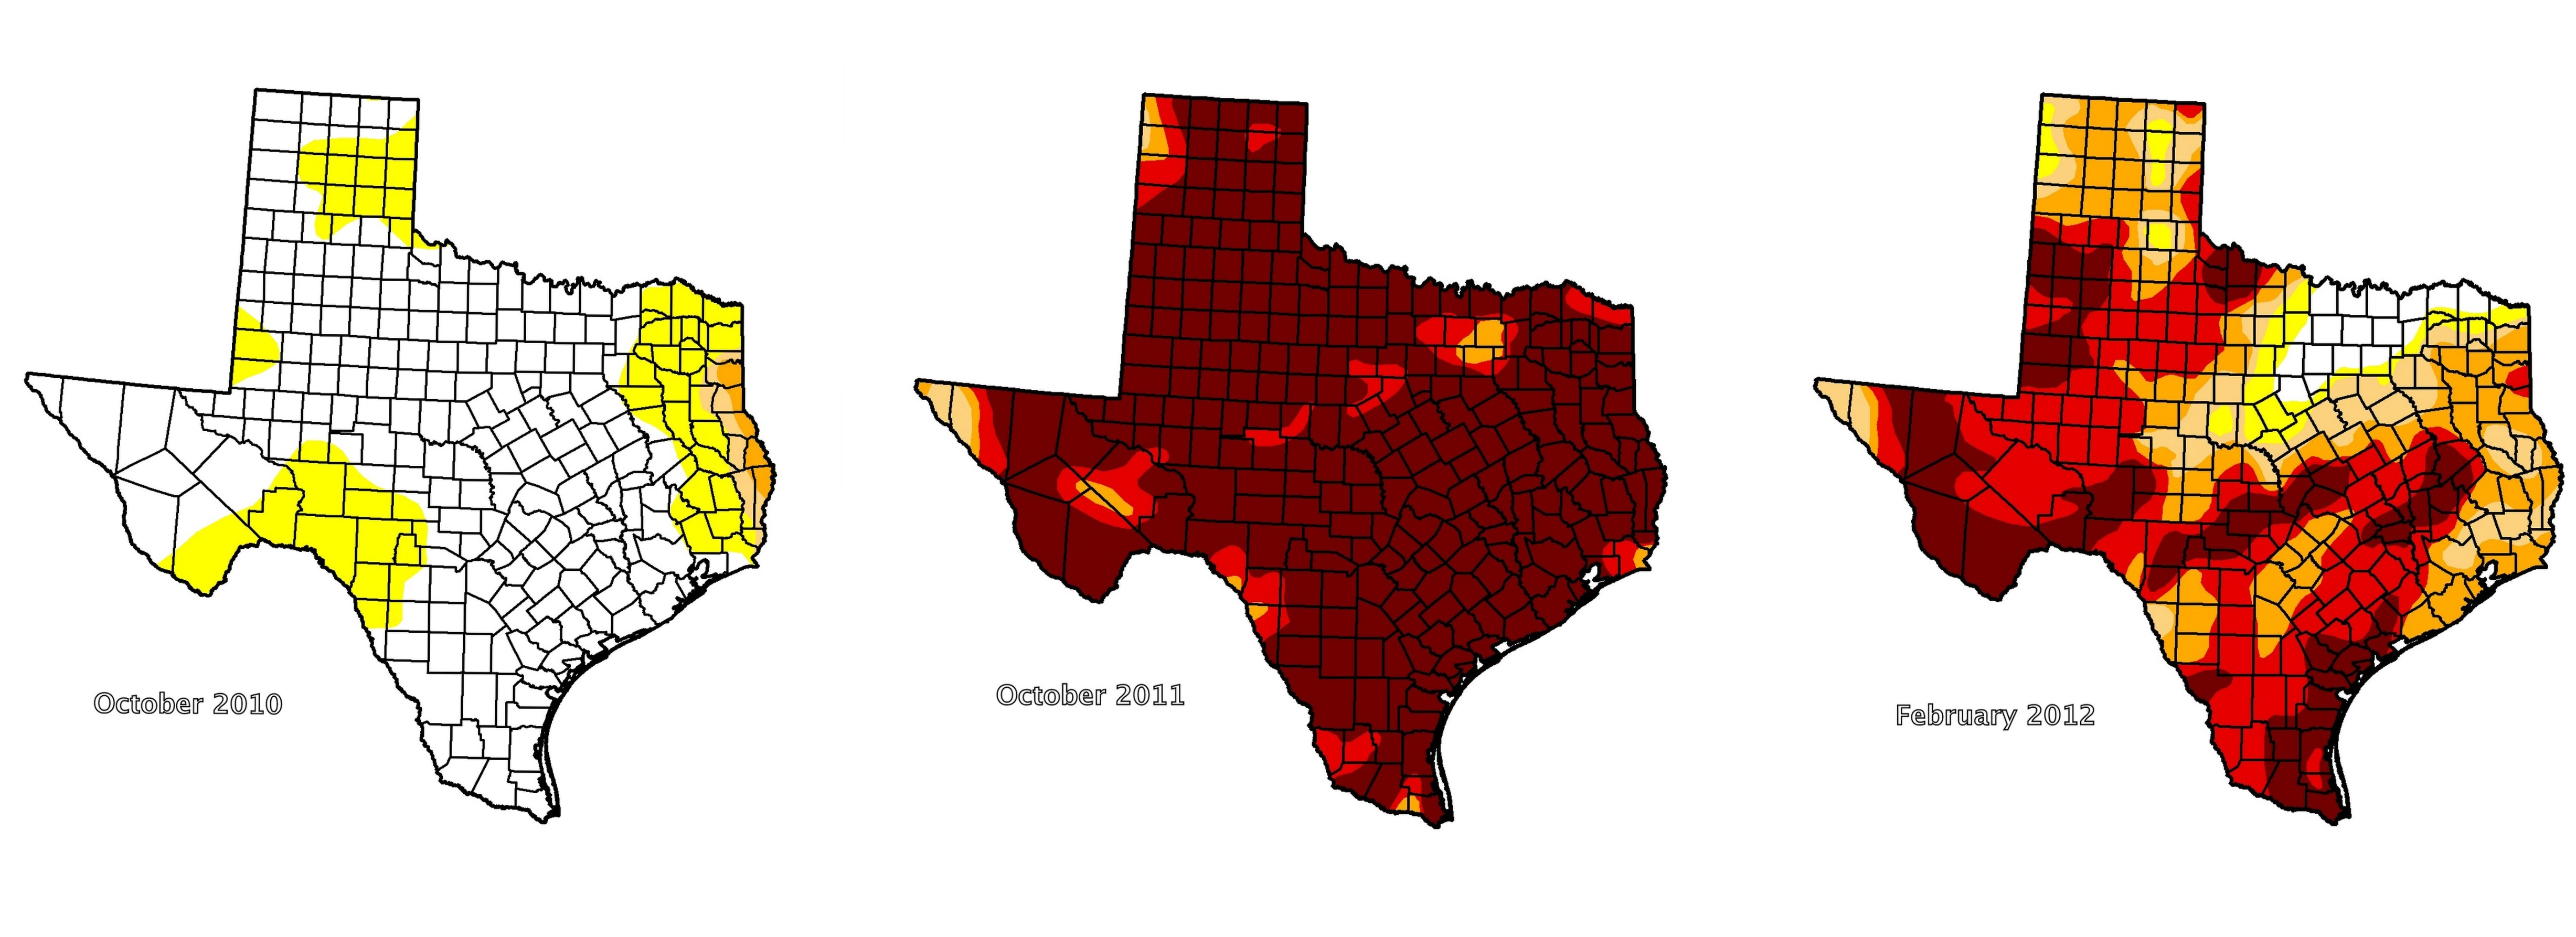 Maps By National Drought Center